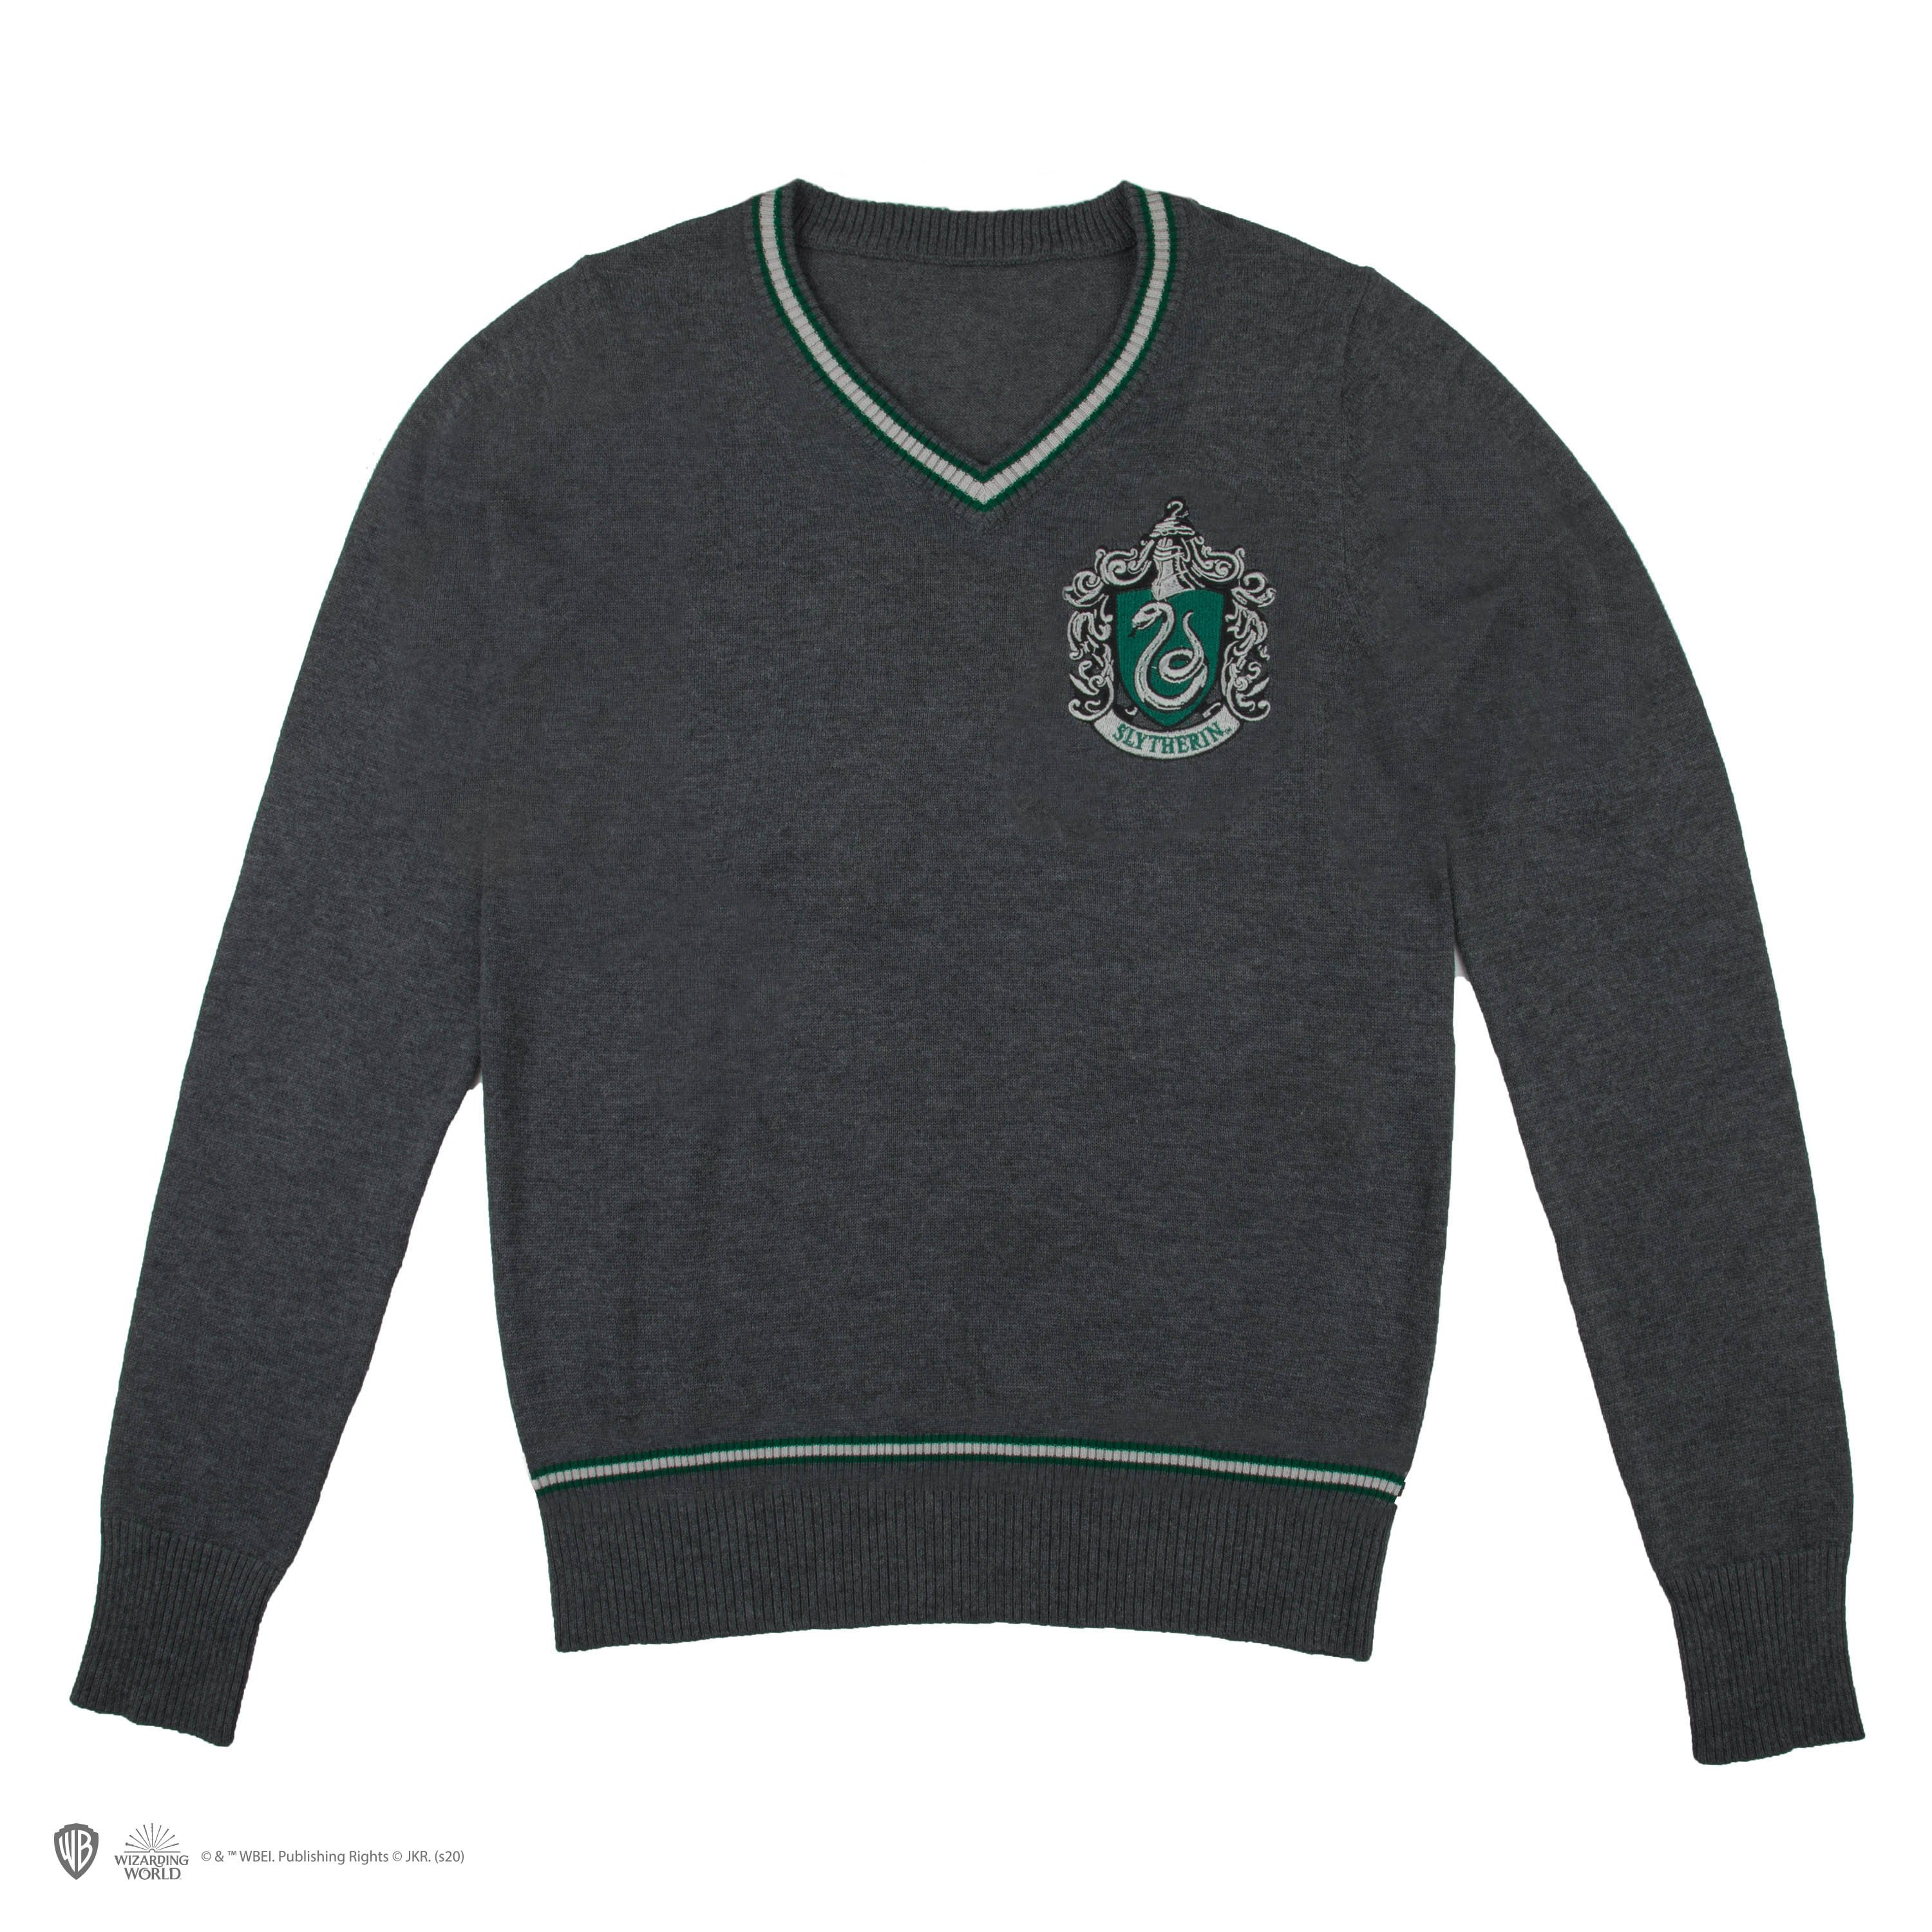 Harry Potter - Slytherin - Grey Knitted Sweater - Large